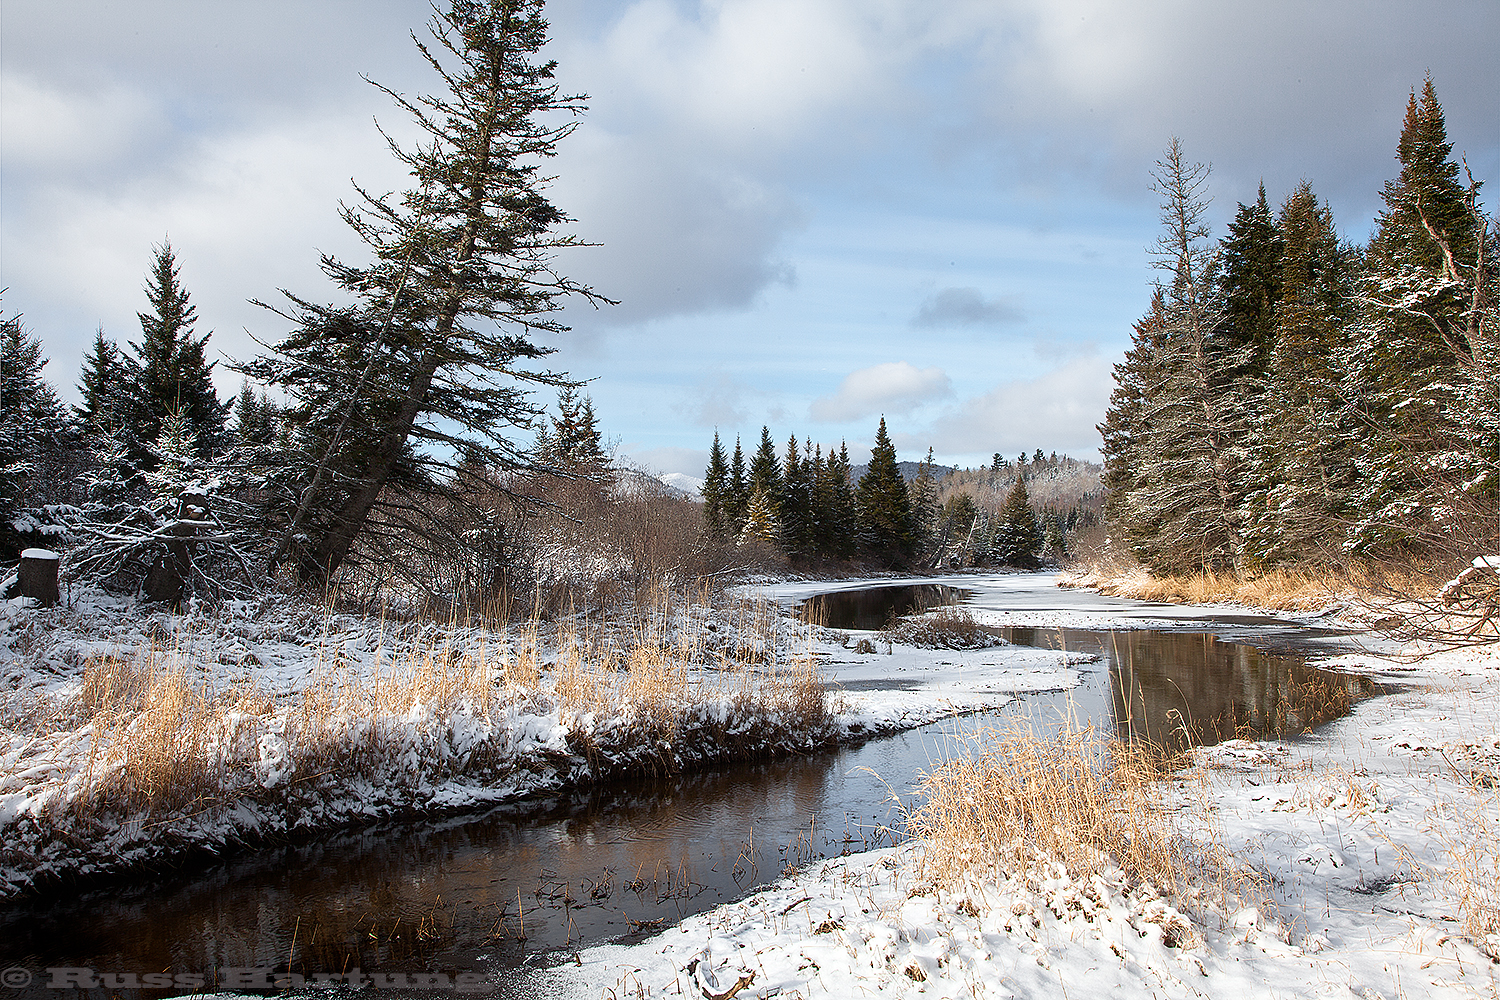 An early snow and a leaning pine tree near Lake Placid set off a stream as it disappears into the distant mountains.